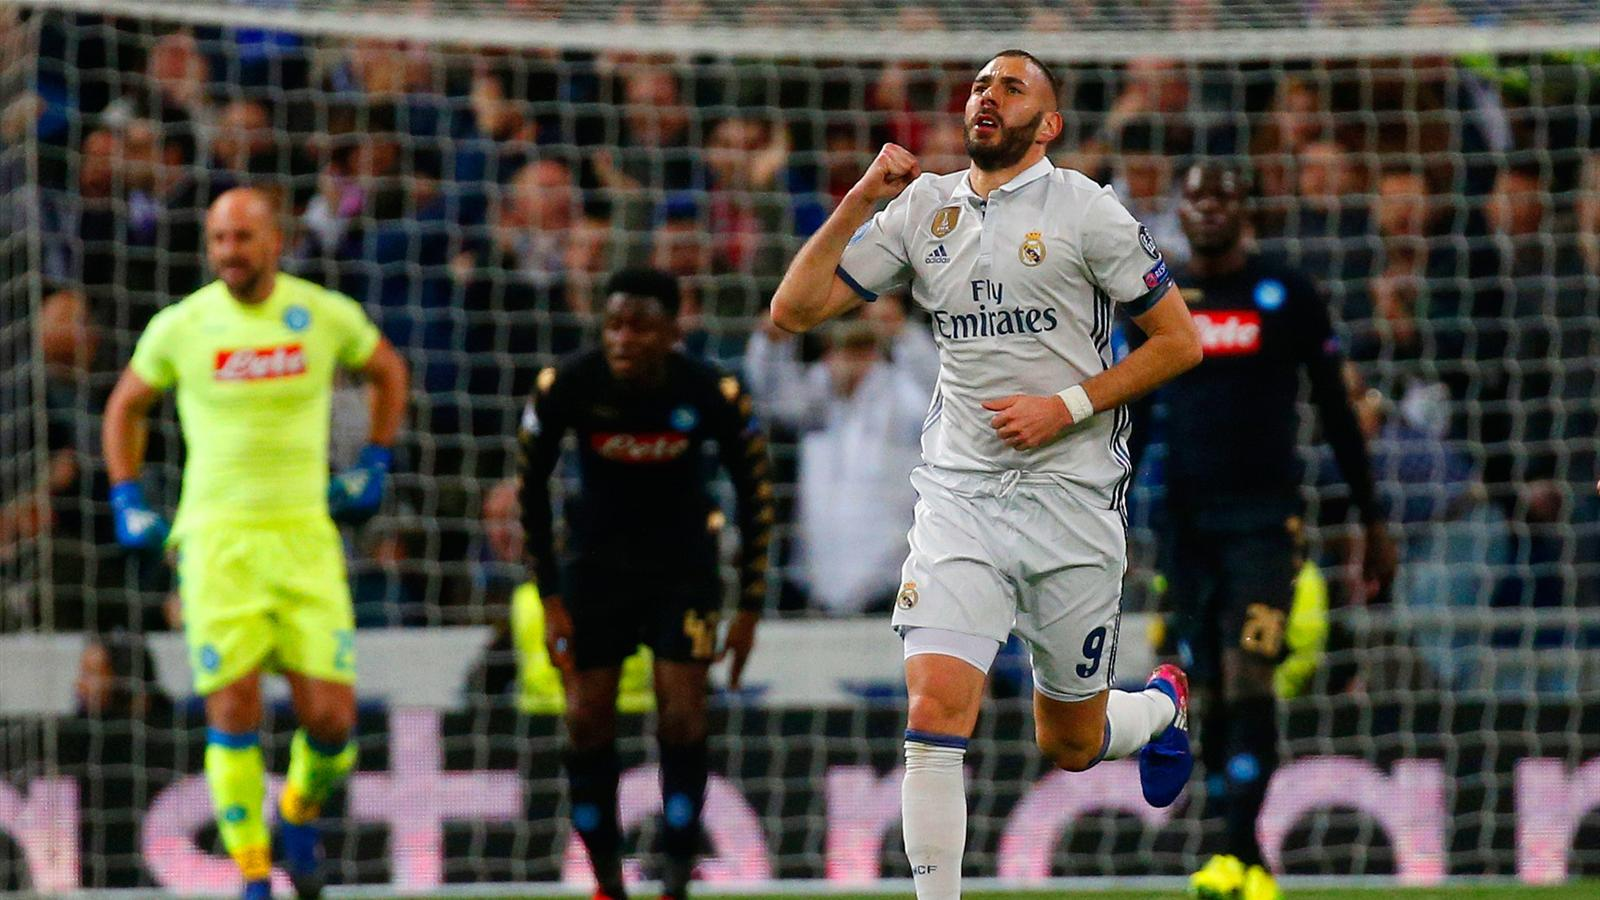 Real madrid 39 s benzema silences his critics football - University league tables french ...